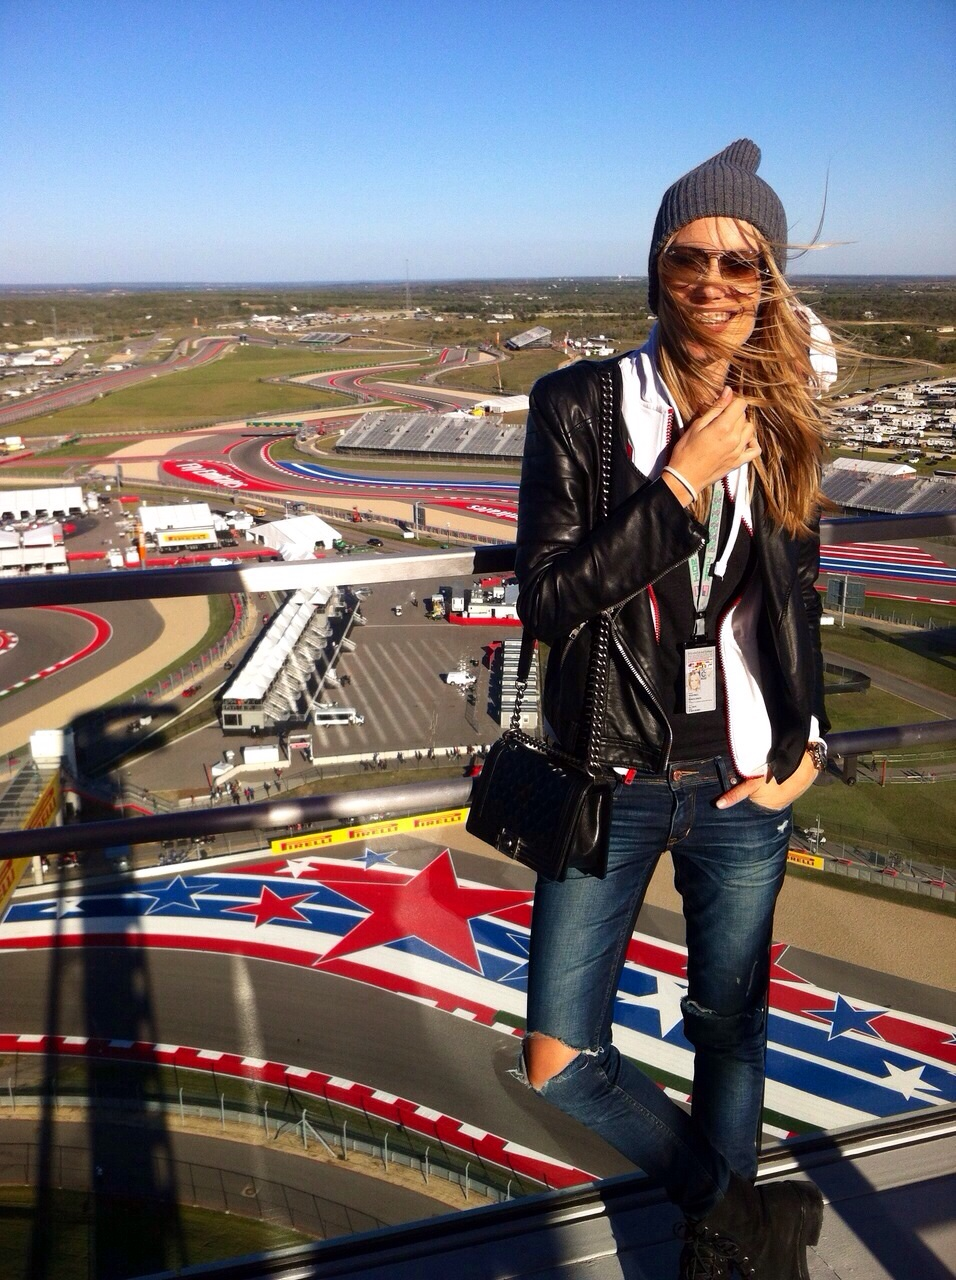 """""""The amazing Circuit of the Americas seen from the observation deck. """""""